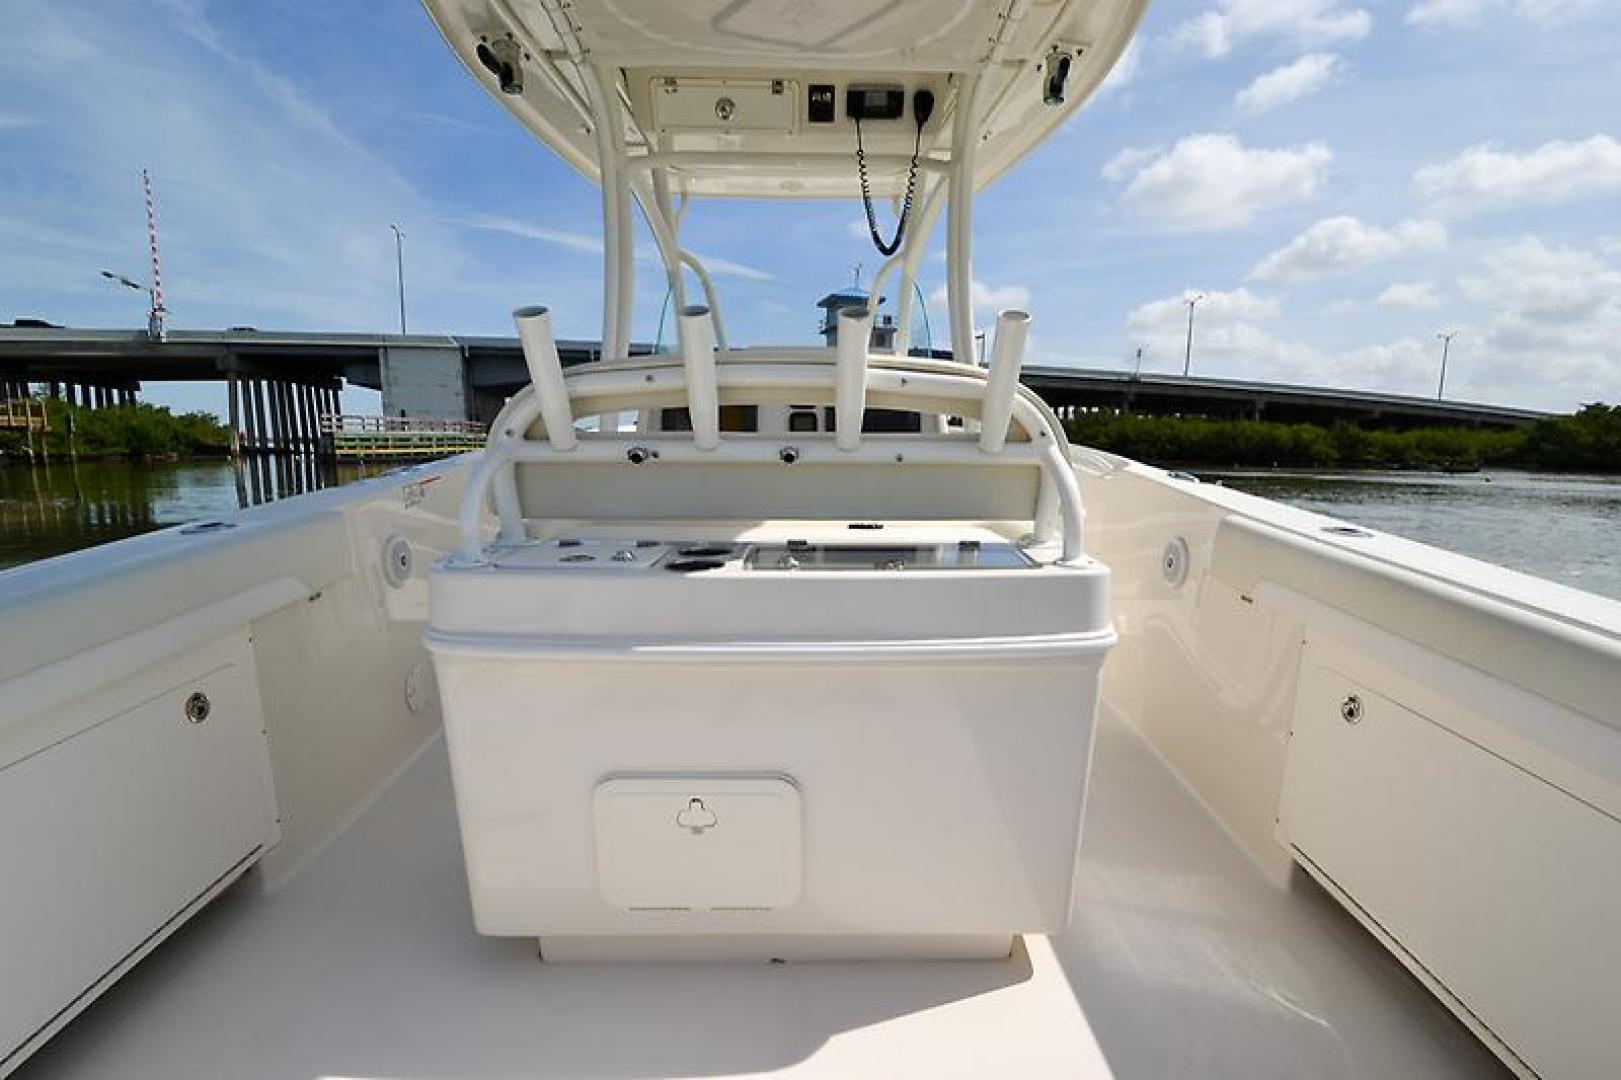 2014 Sailfish 320 cc-31.jpg